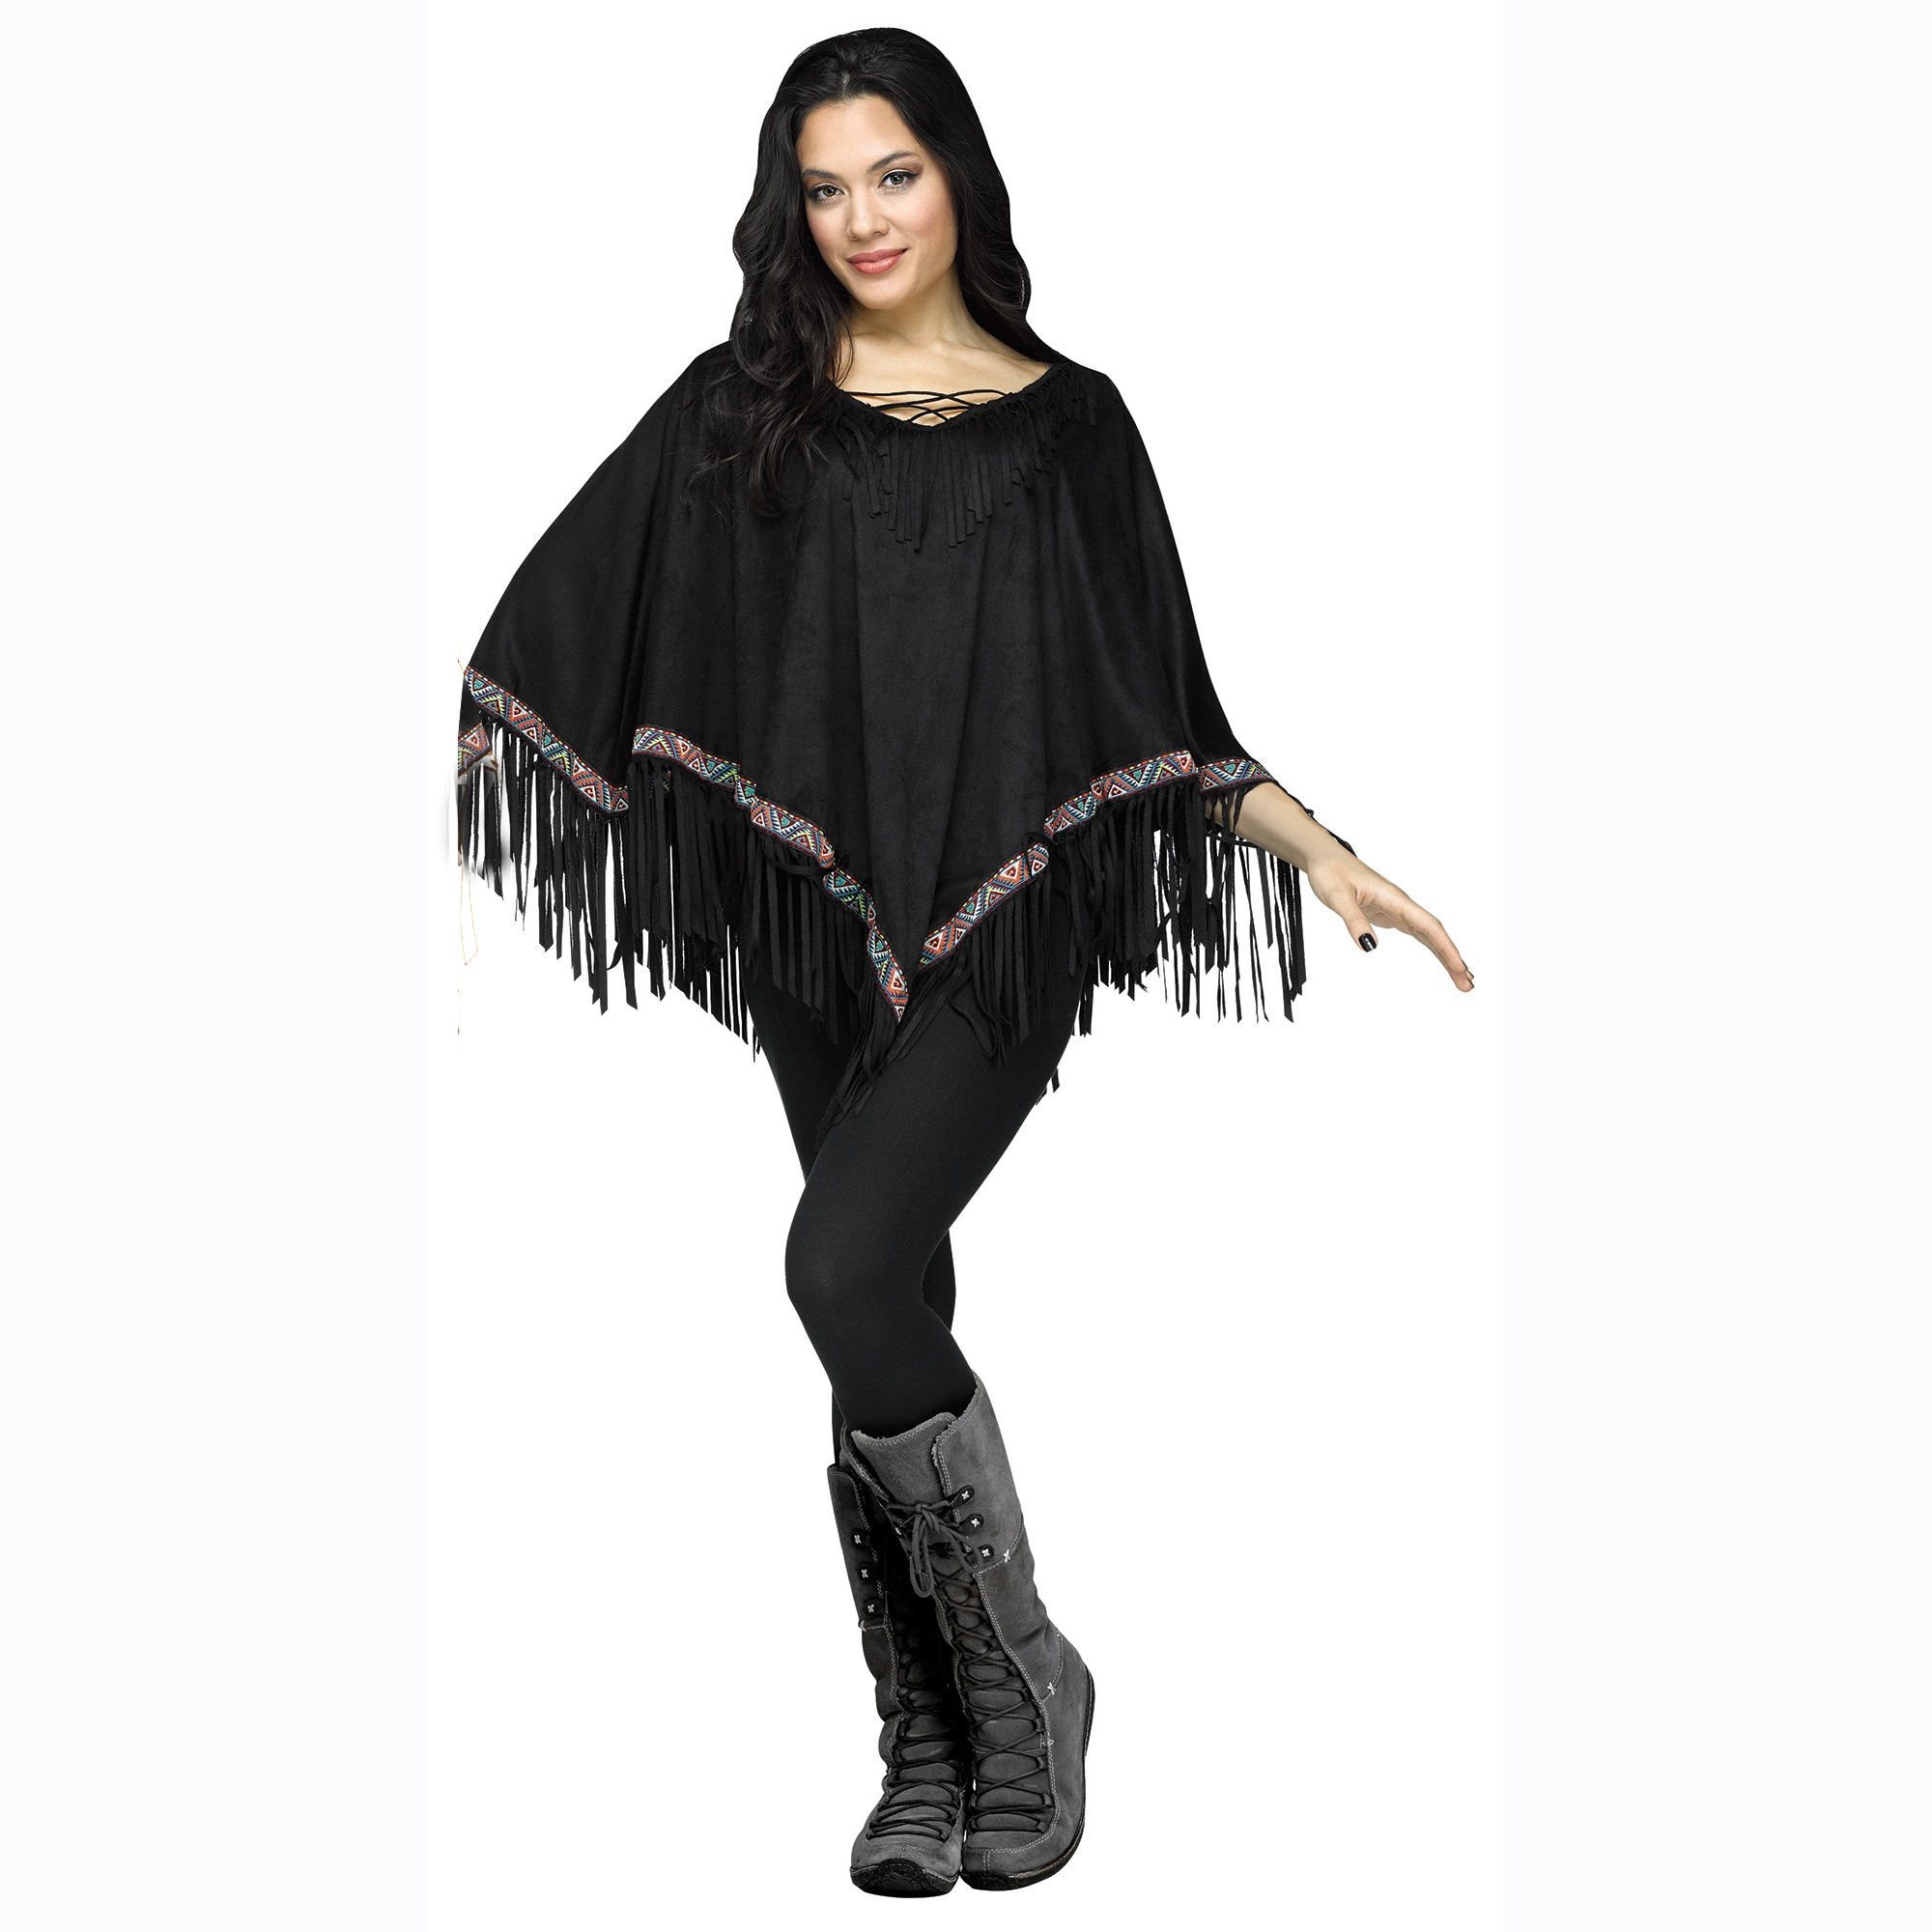 Cowboy Shirt Adult Halloween Costume. $24.95 Select options · Ladies Black Fringed Hippie Indian Poncho  sc 1 st  Cappelu0027s & Country Western Cowboy u0026 Indian Costumes - Cappelu0027s